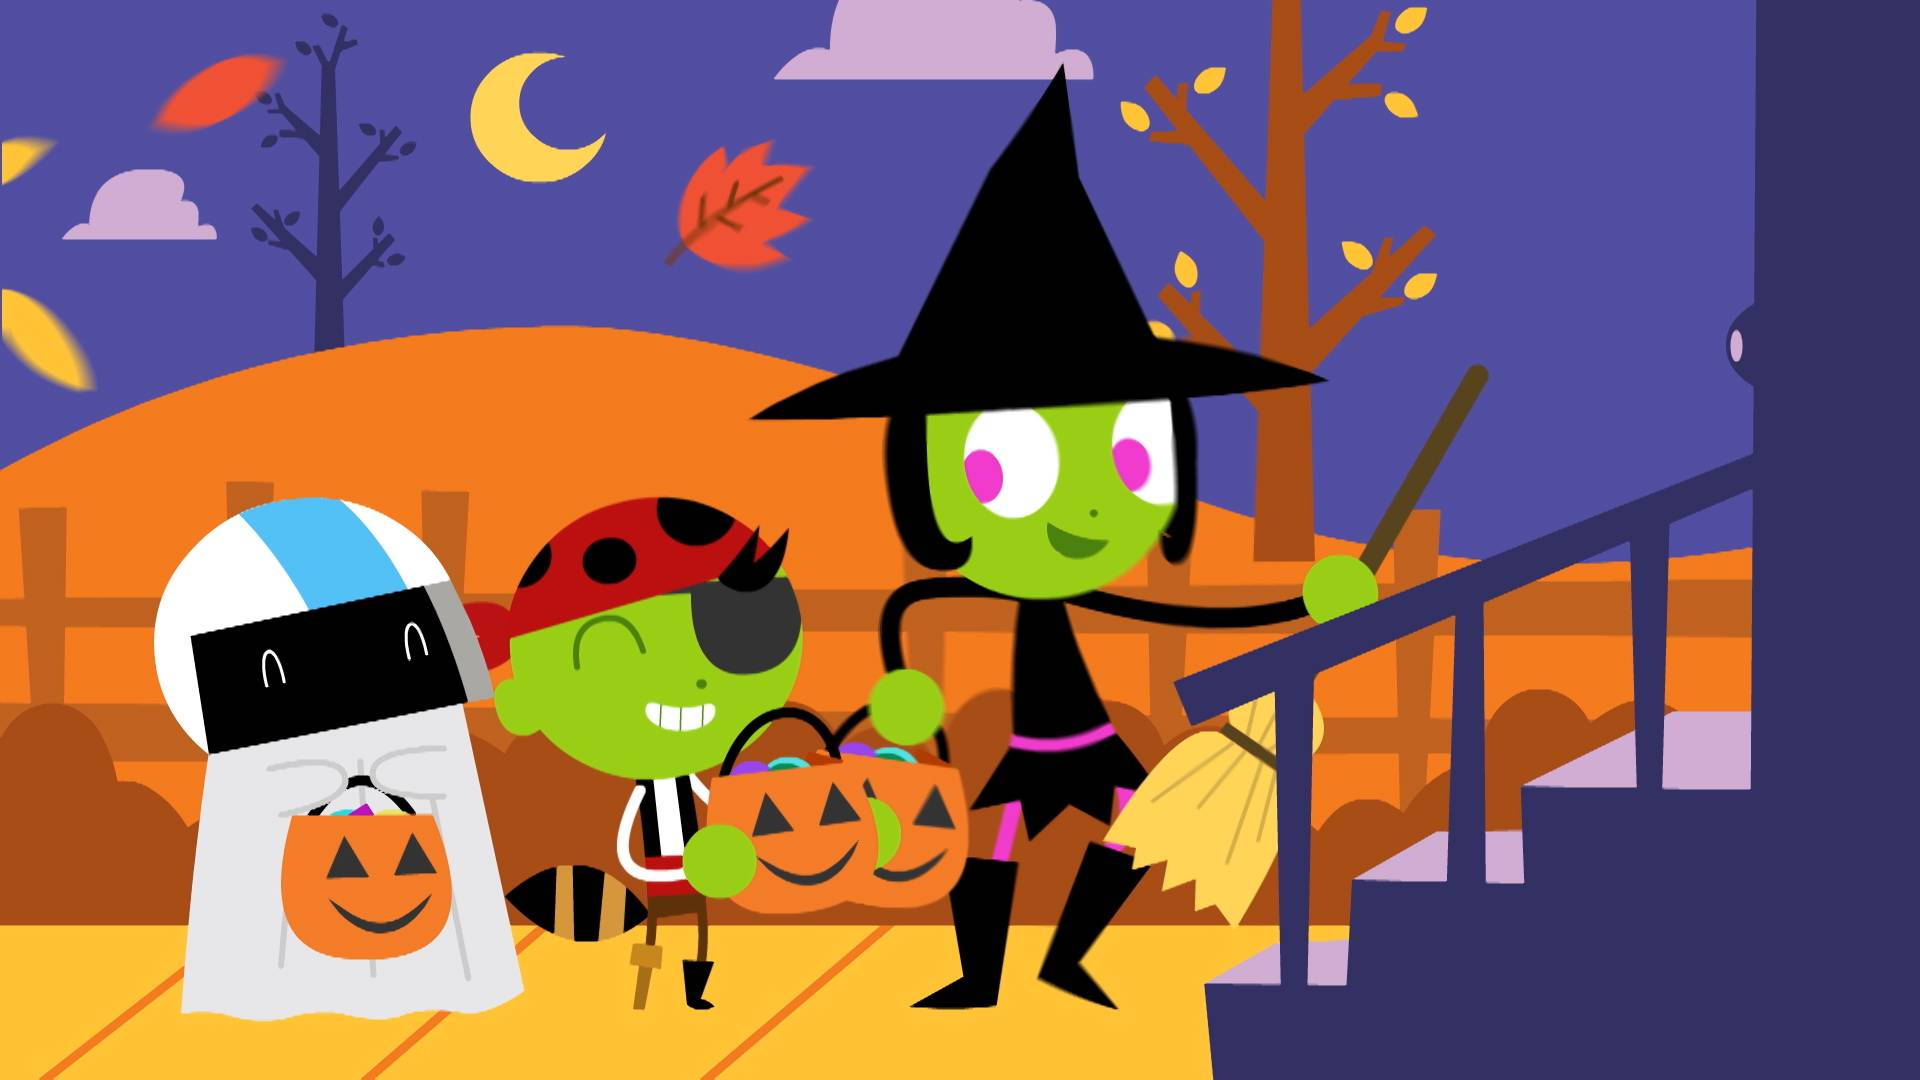 Pbs Kids Halloween Dvd.Pbs Kids Announces New Halloween Programming Multiplatform Content